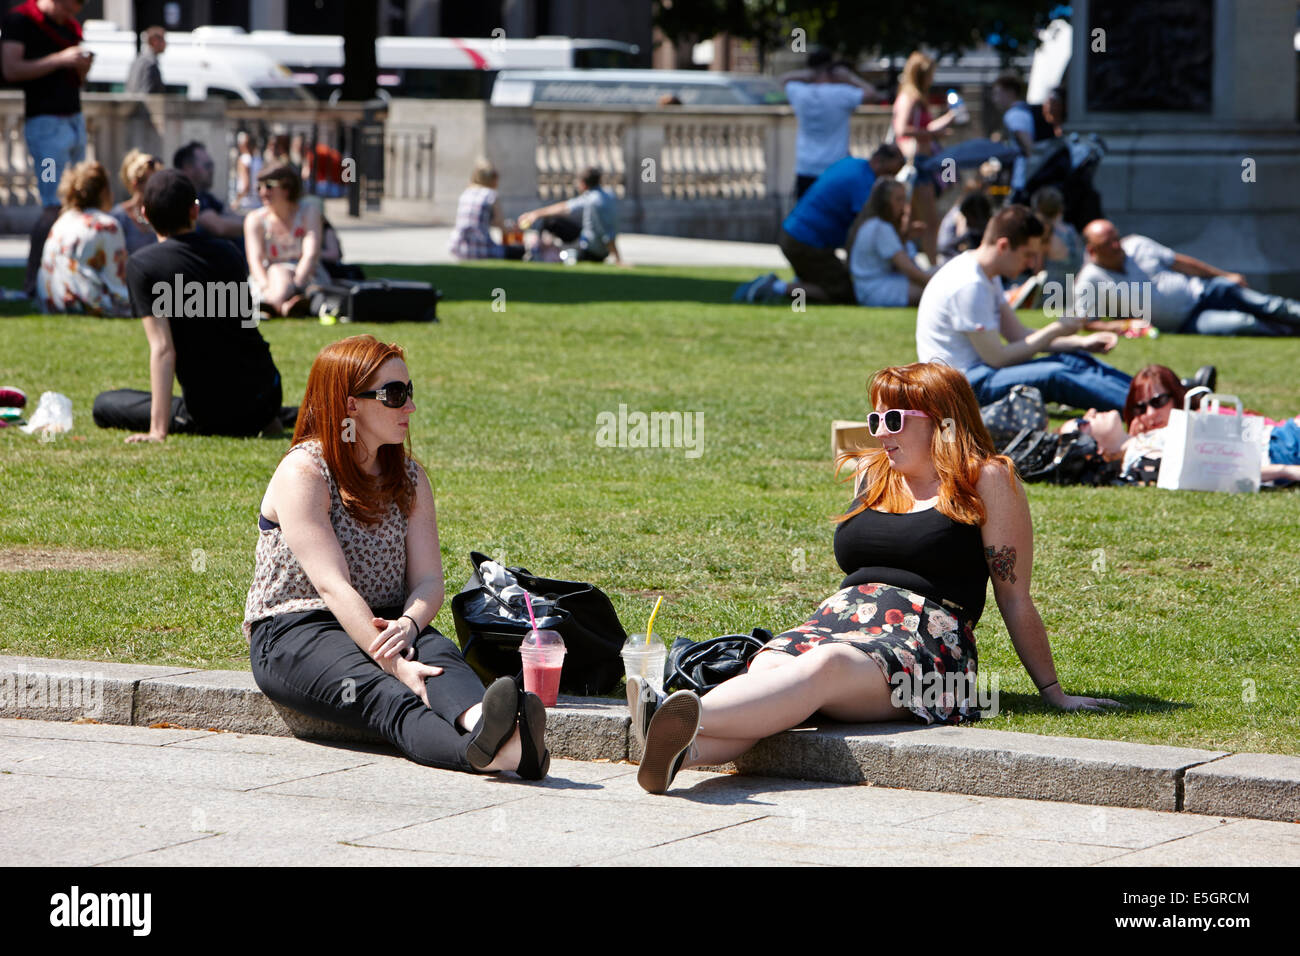 two red headed women enjoying cool drink on hot summers day in the grounds of Belfast city hall in the city centre - Stock Image